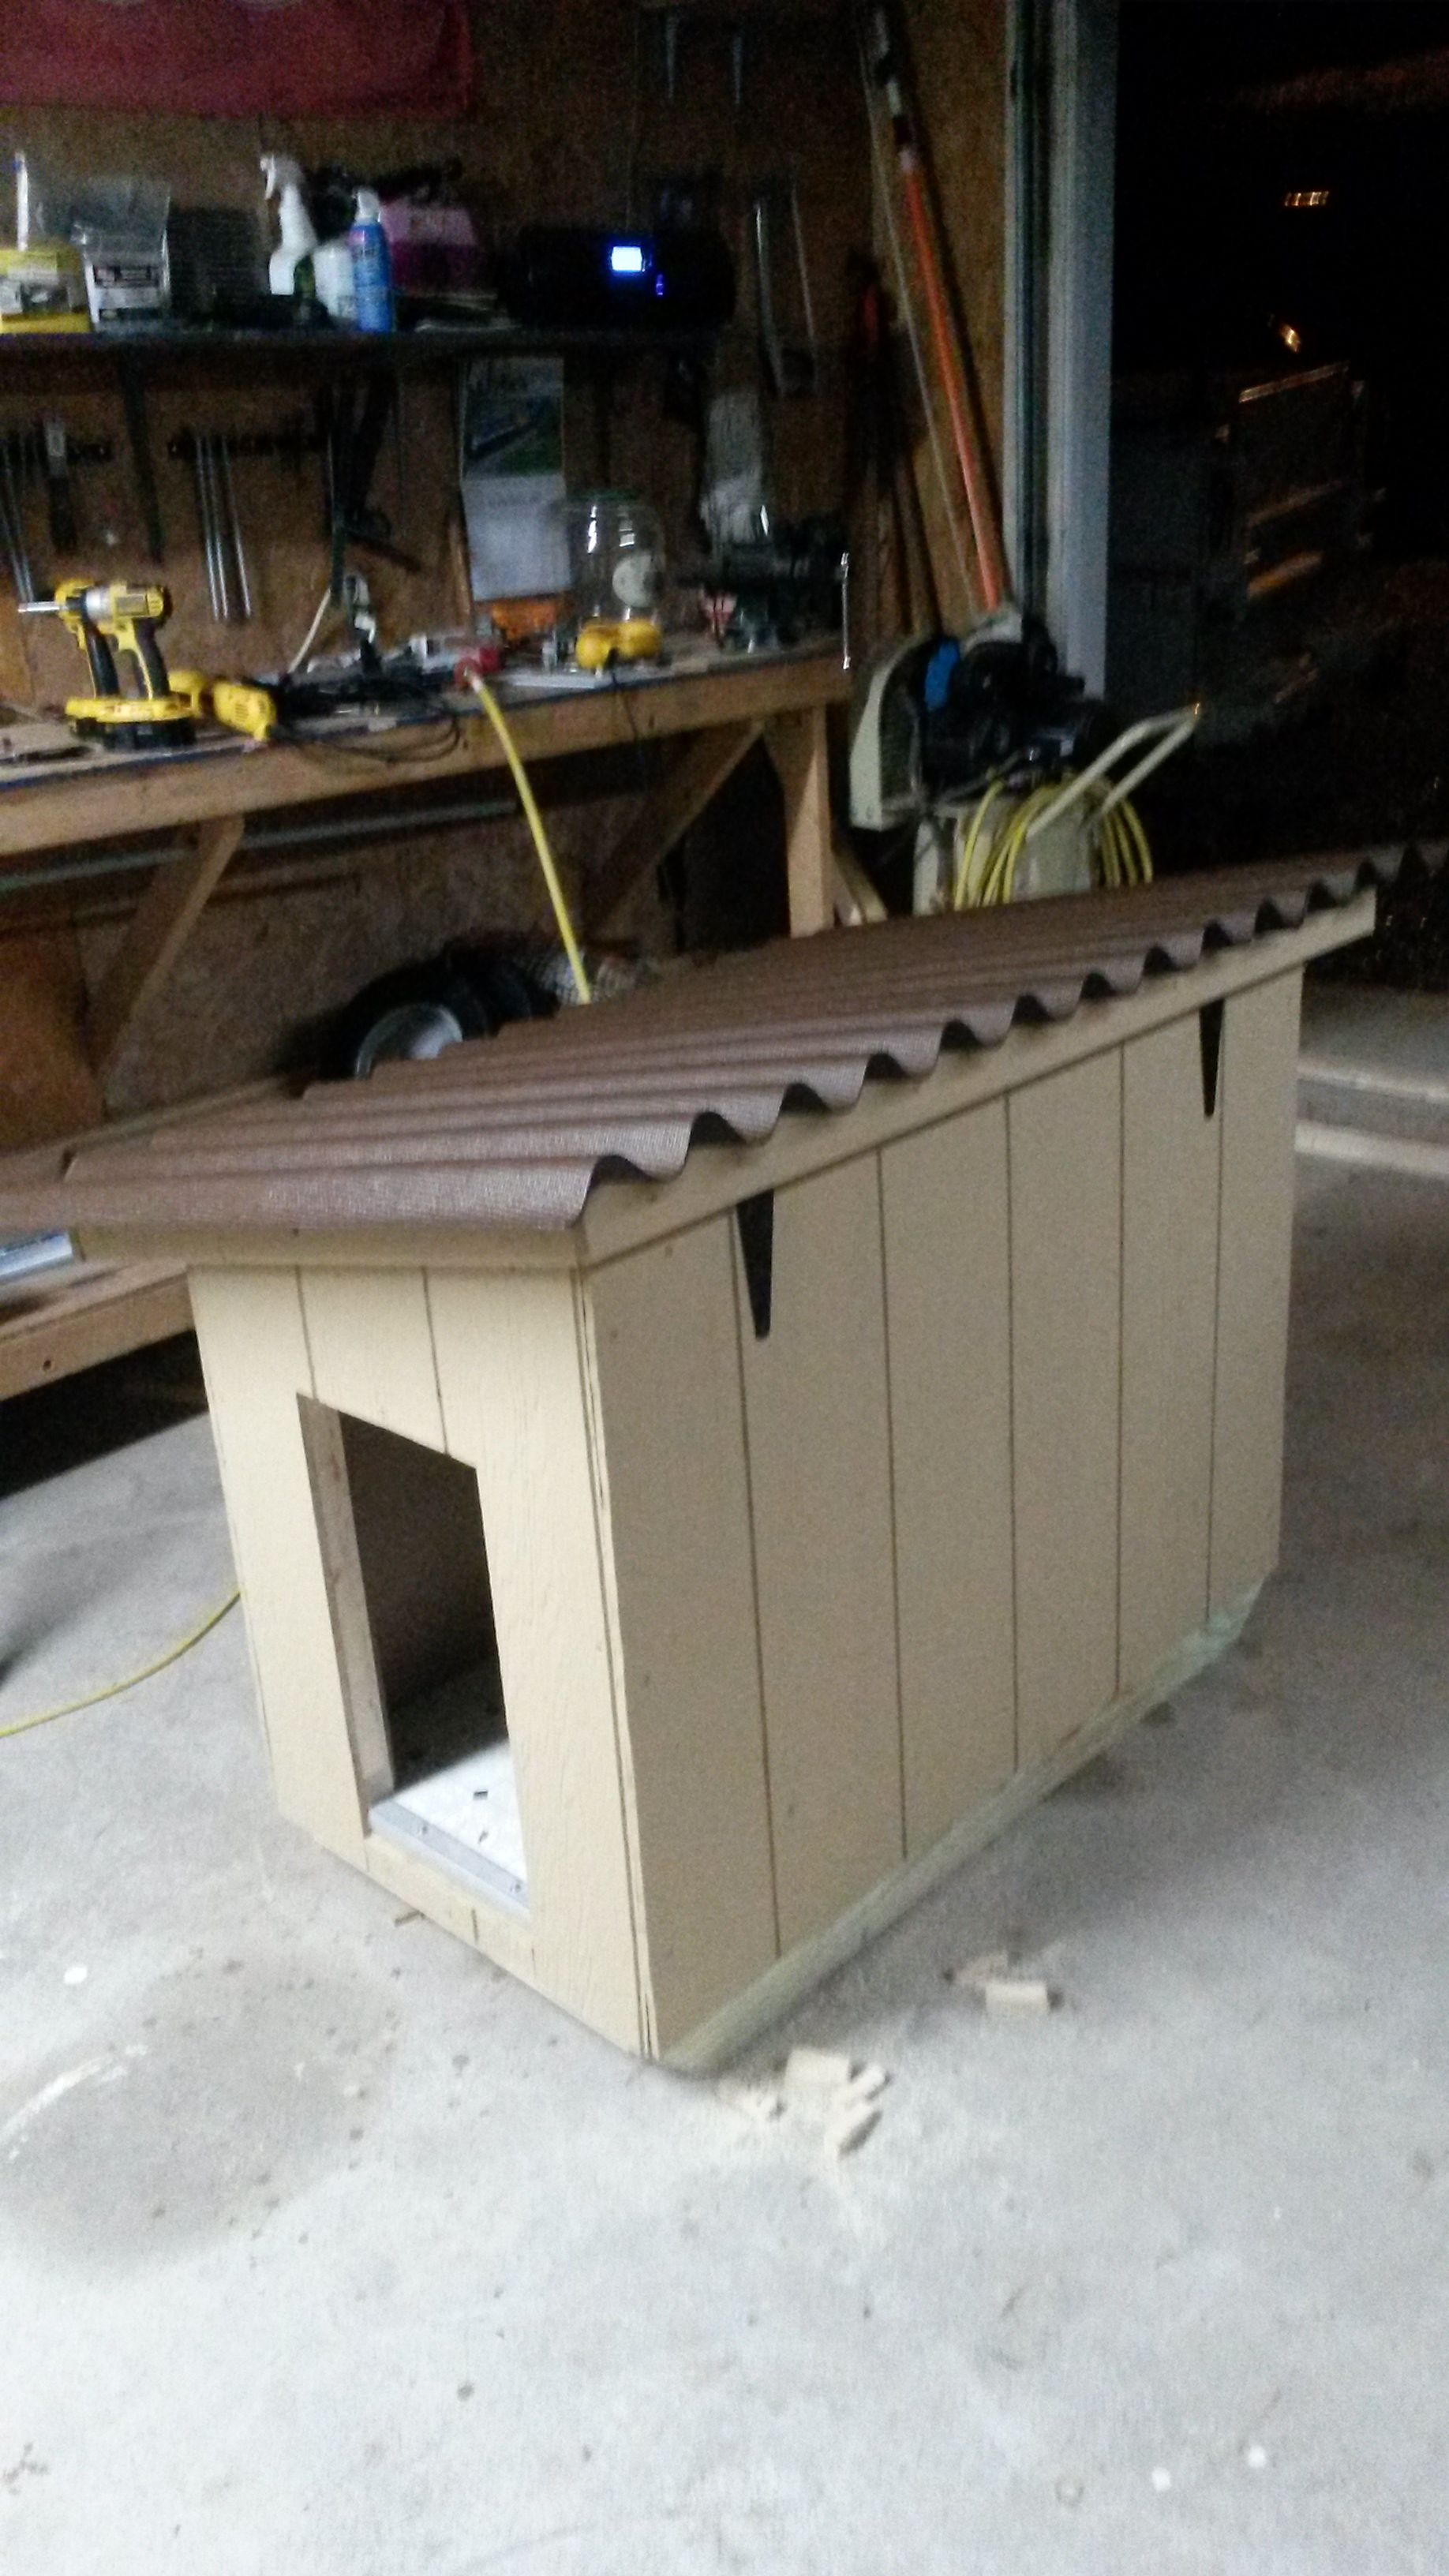 Insulated Doghouse With Hinged Roof And Linoleum Flooring For Easy